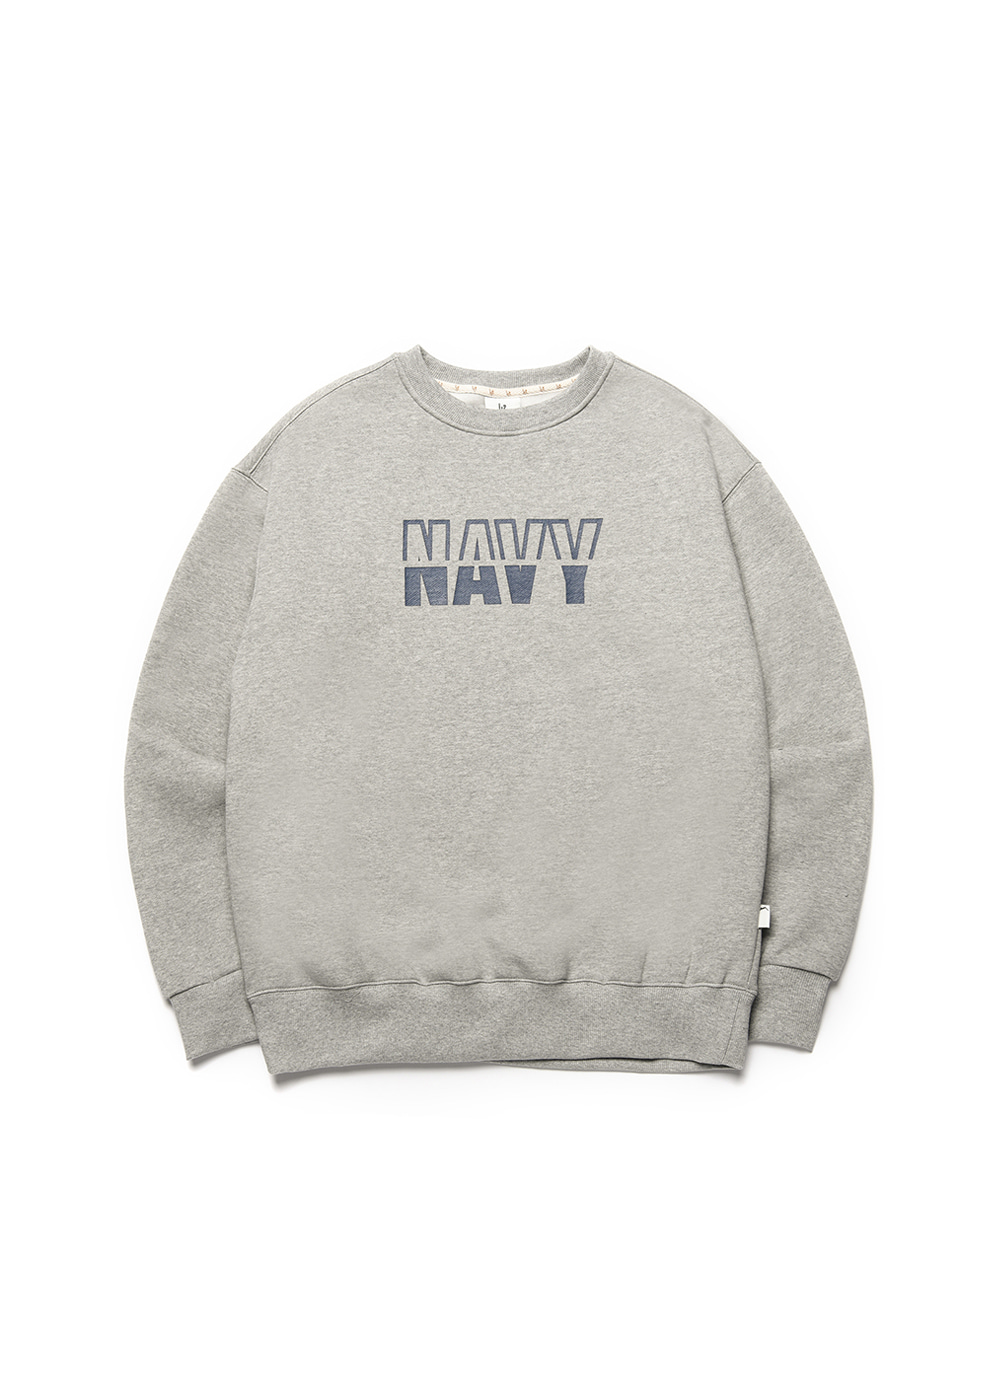 Navy sweat shirt [melange]